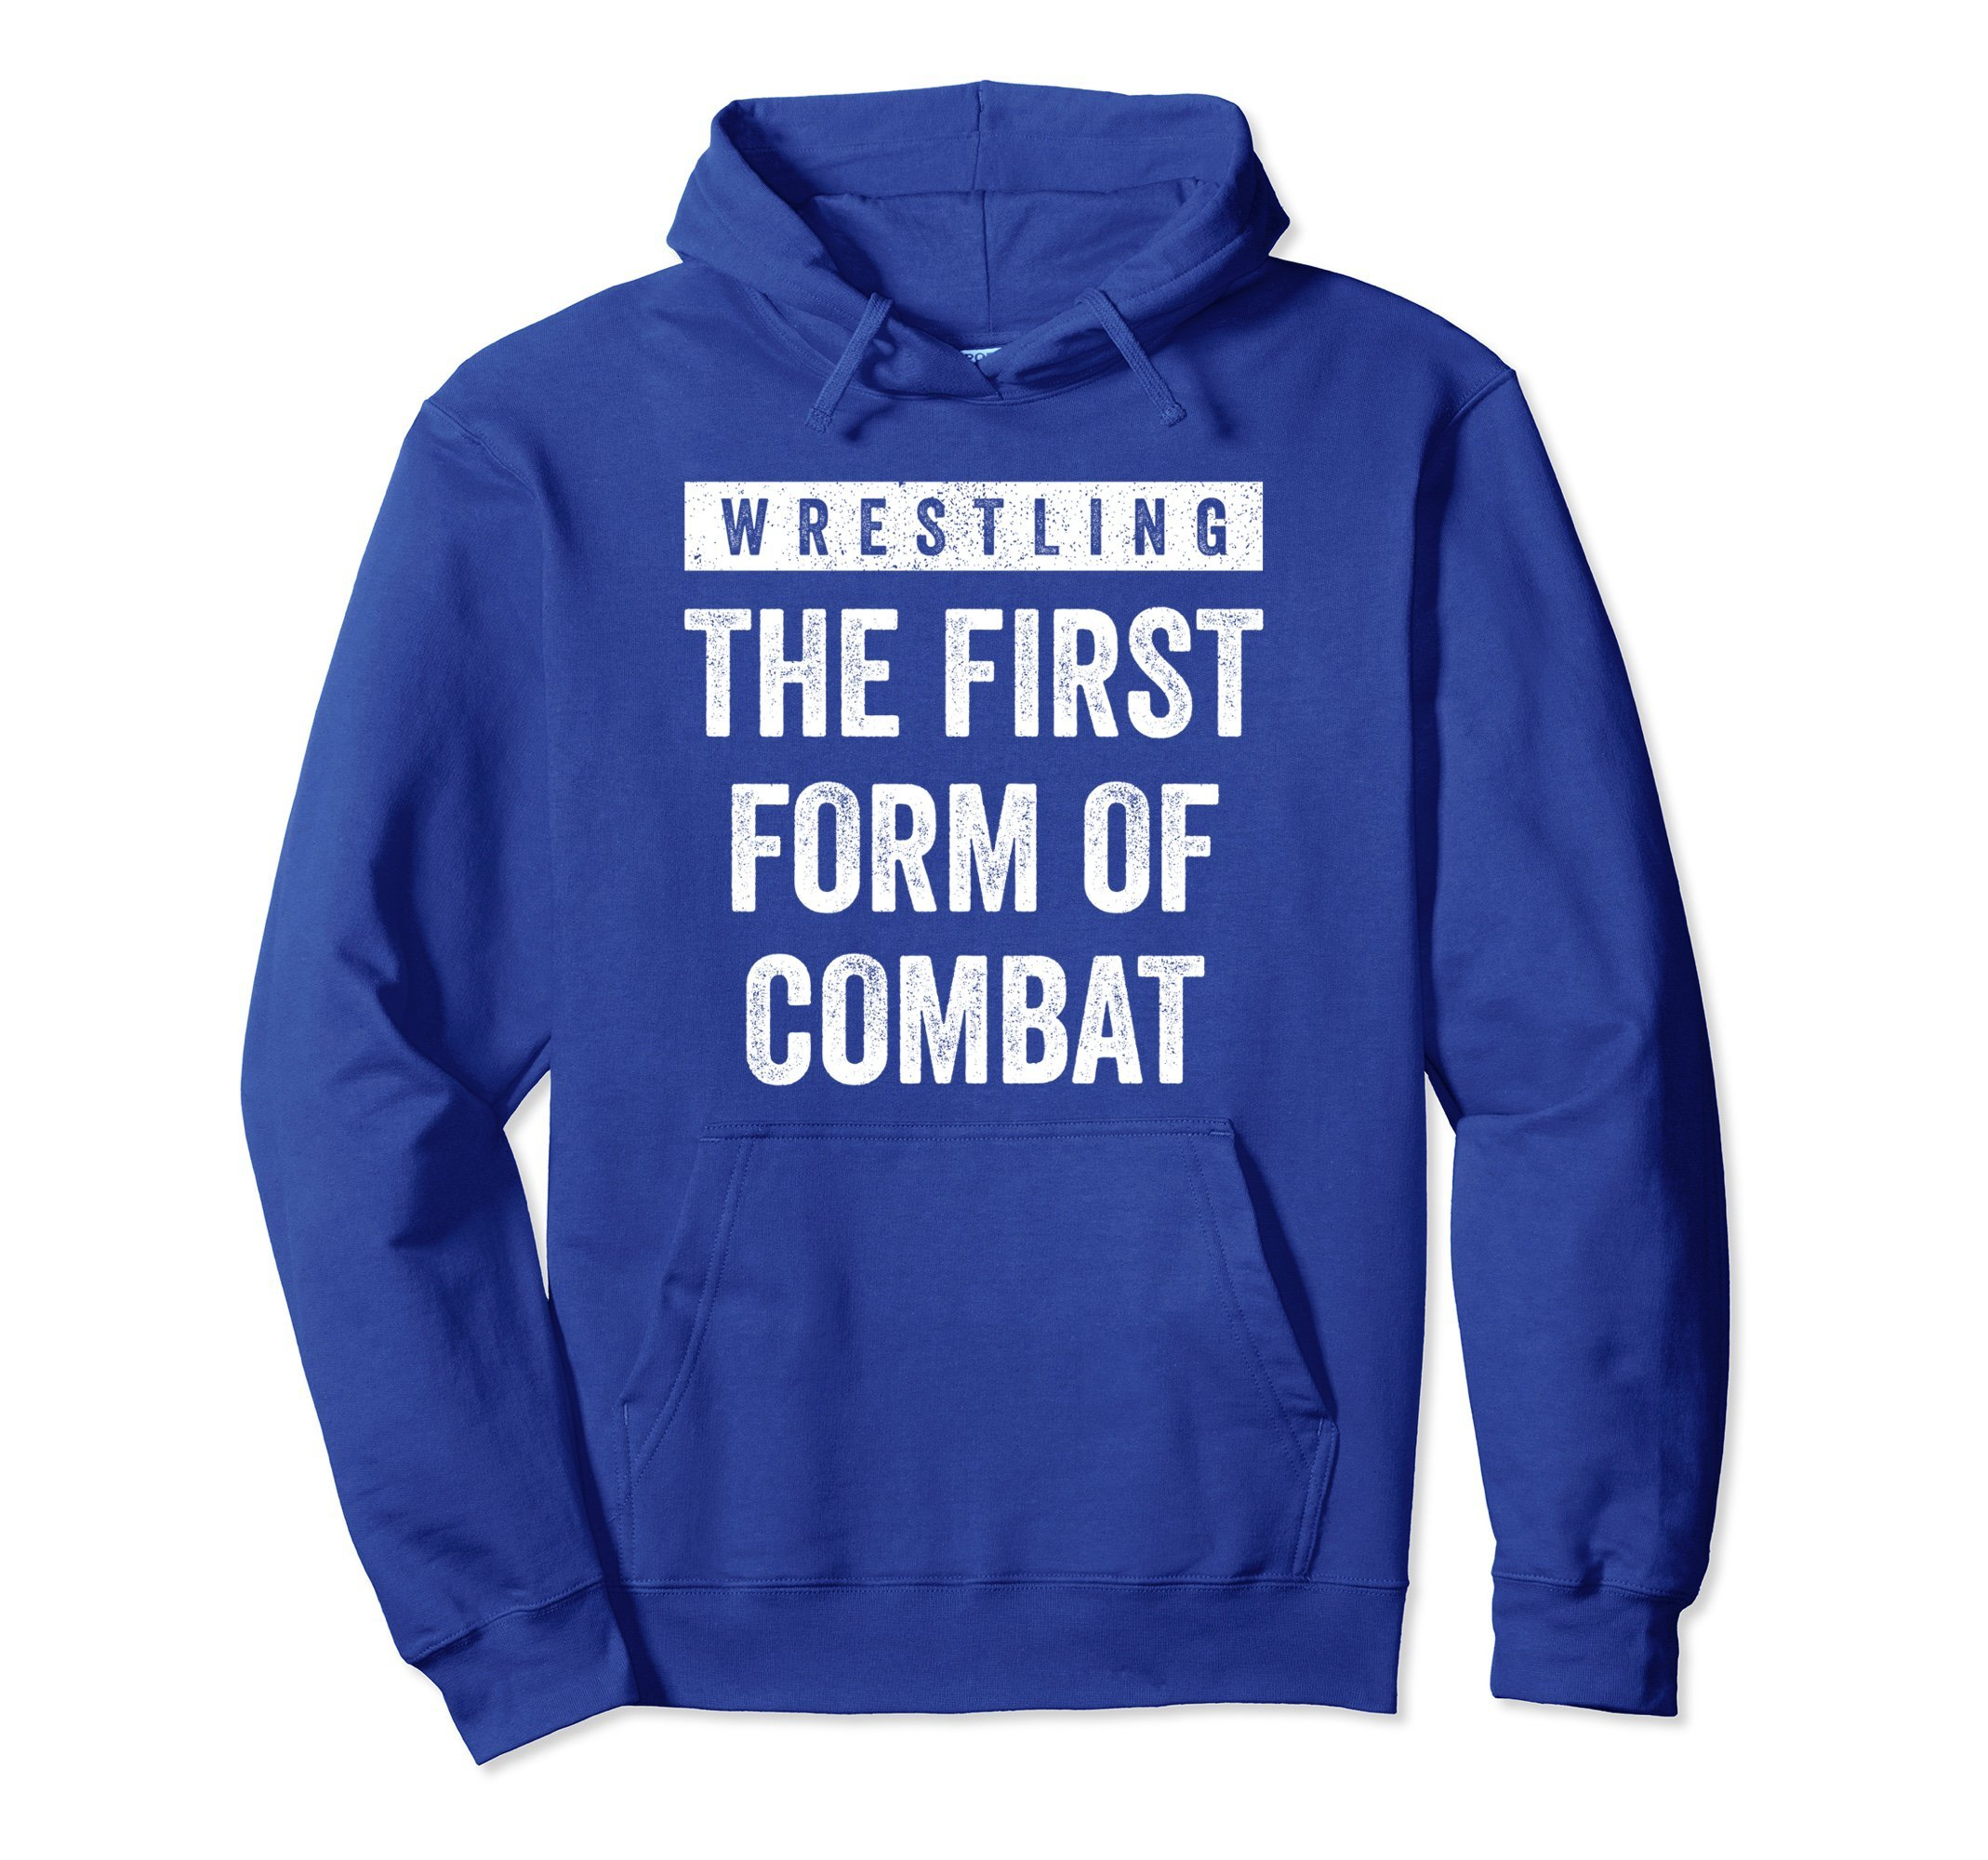 Unisex Wrestling First Form of Combat Hoodie for Wrestlers, White Small Royal Blue by Wrestling Shirts and Wrestling Shoes